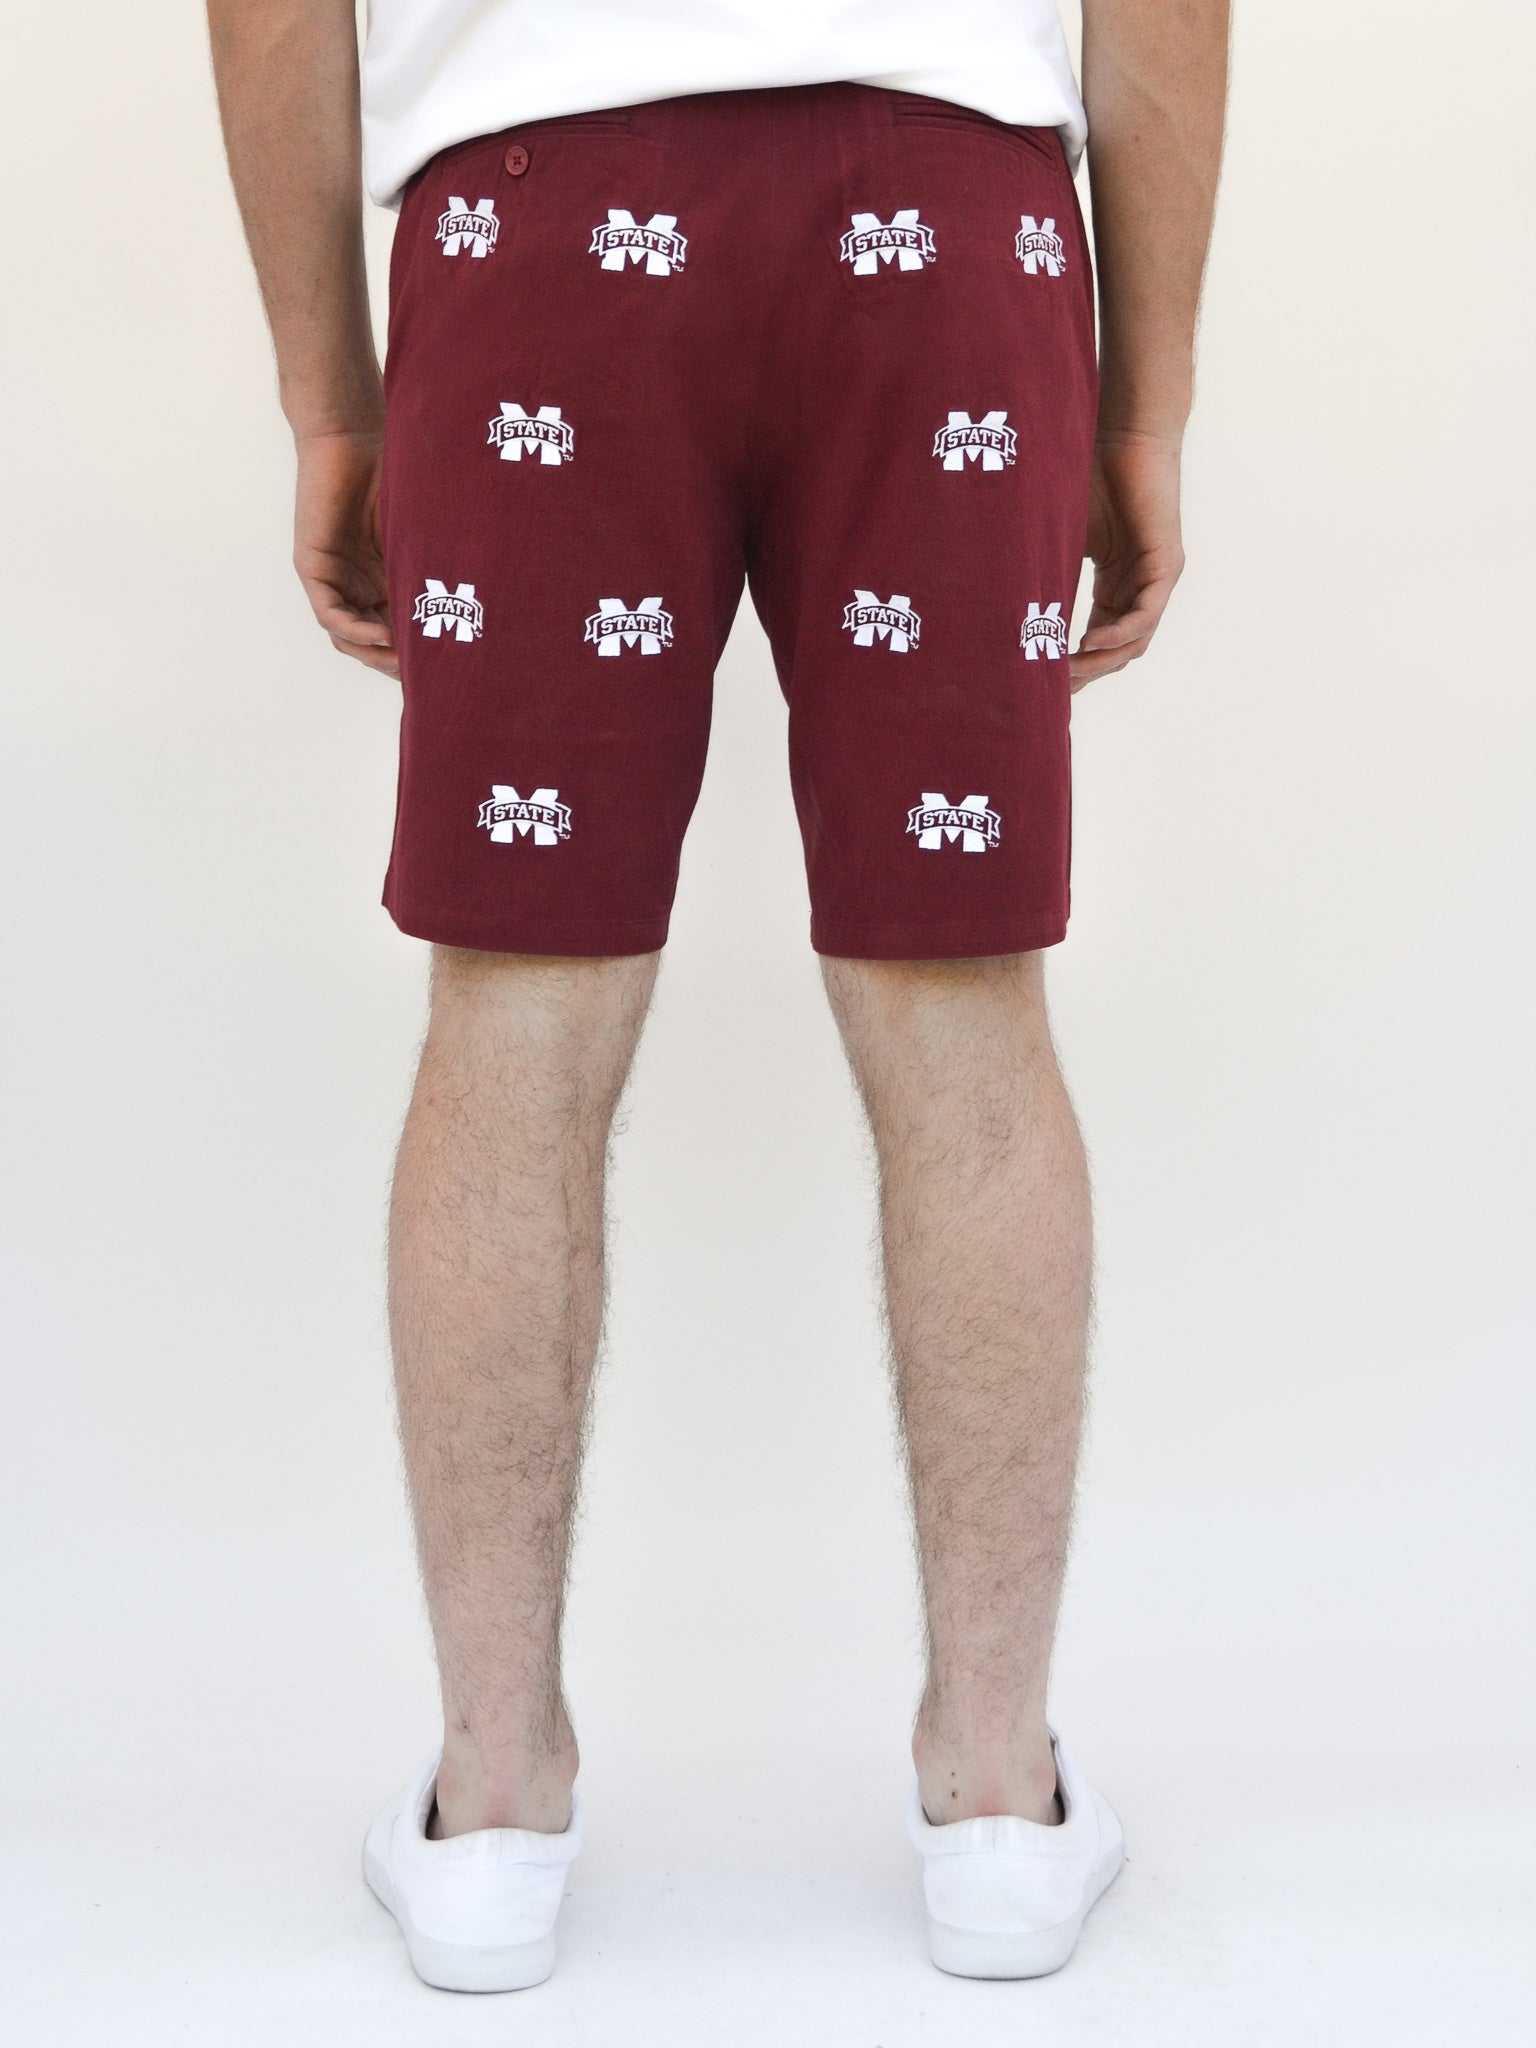 Mississippi State Maroon Shorts